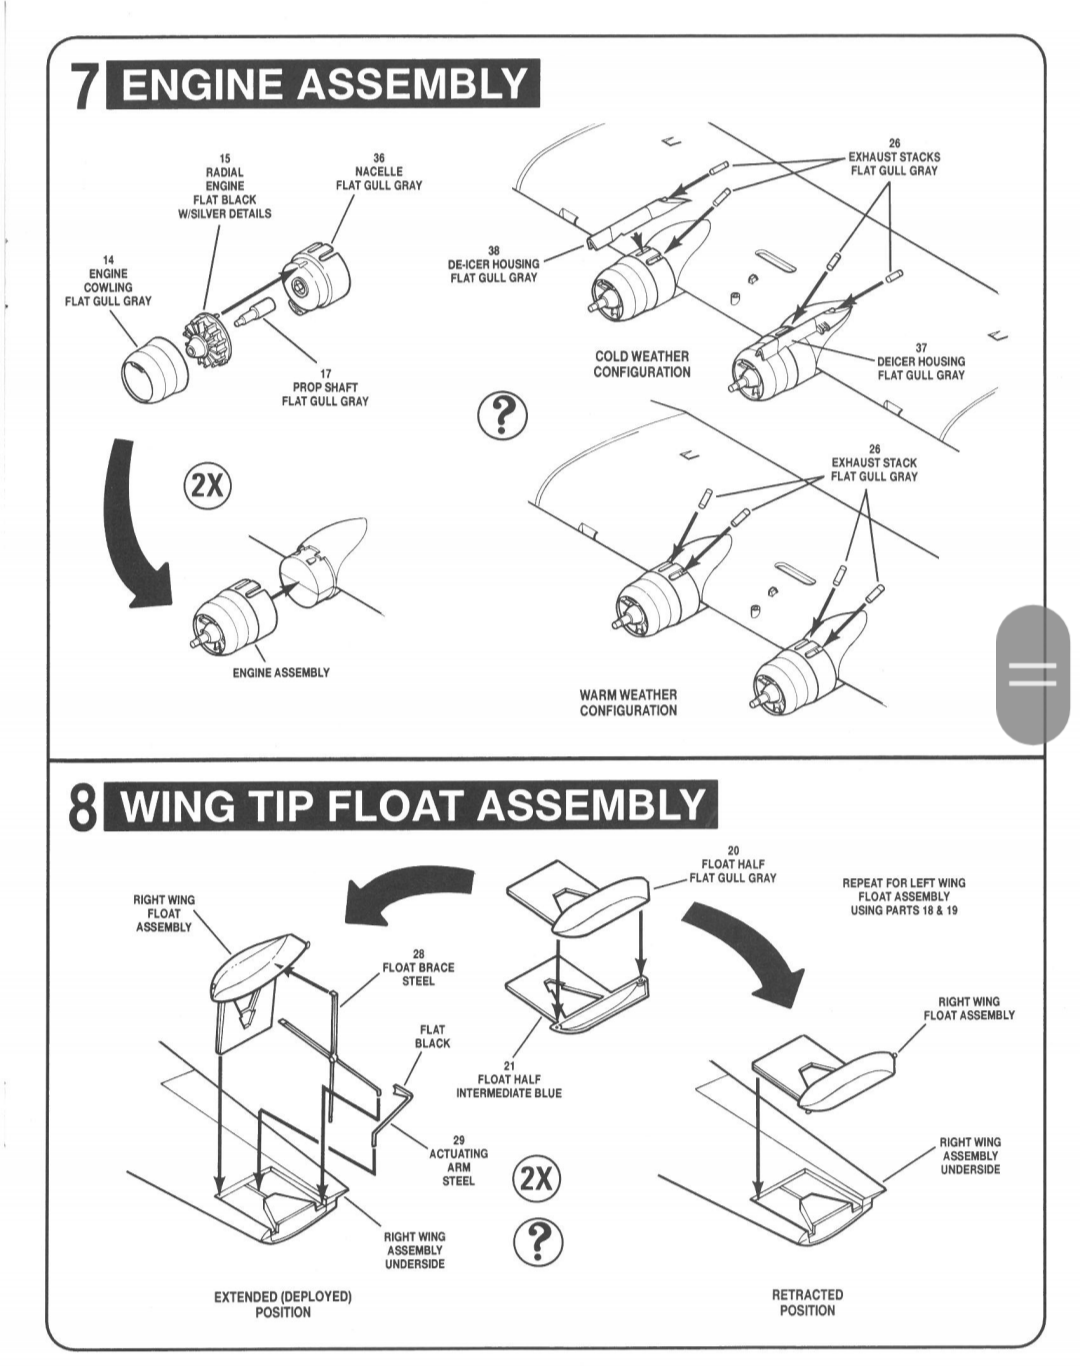 7 engine assembly 8 wing tip float assembly